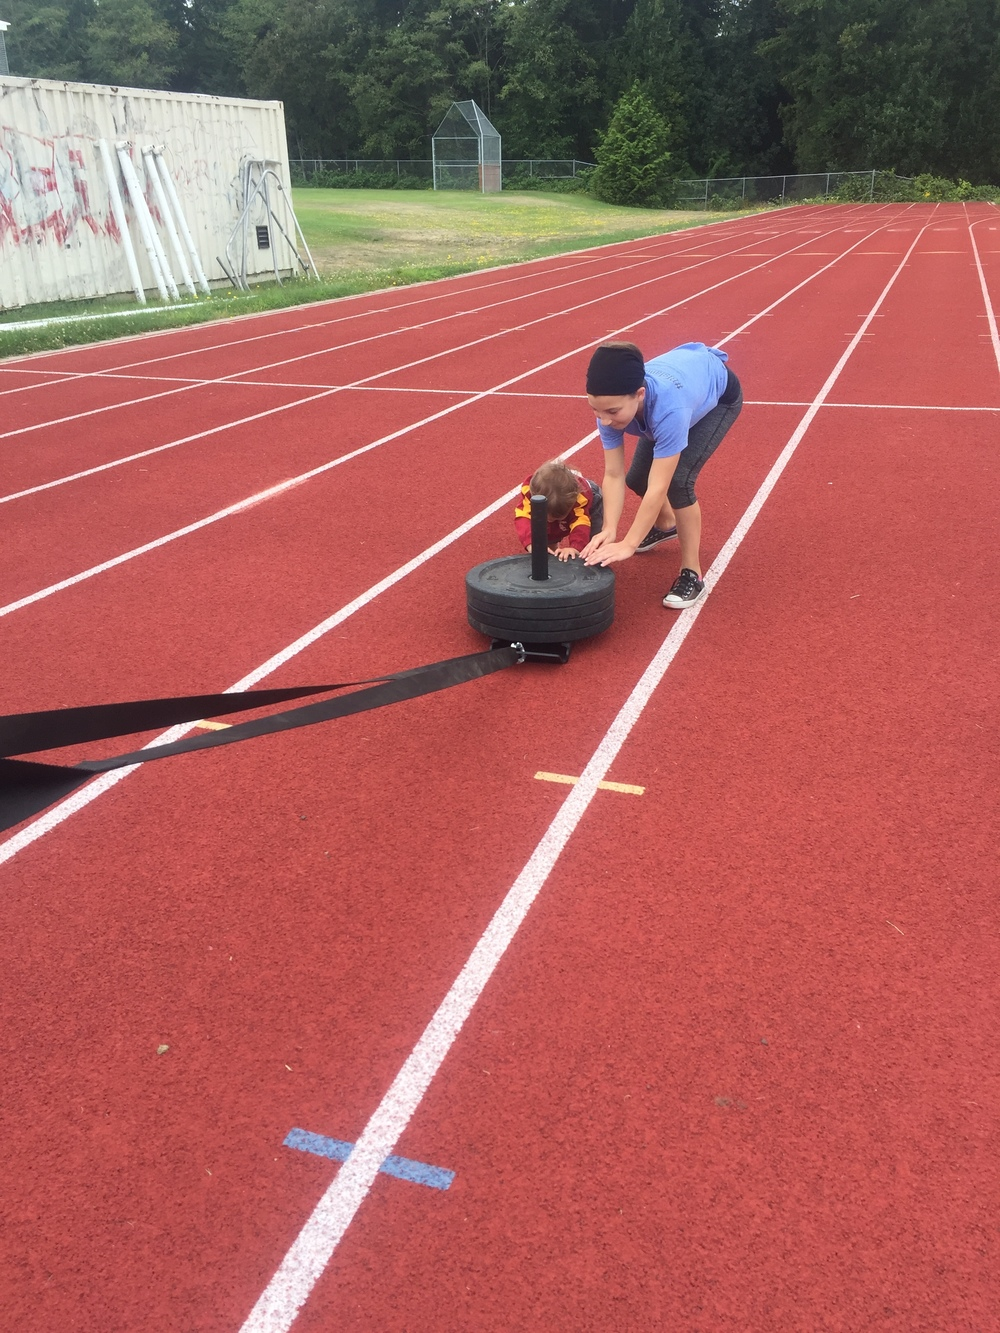 Junior Athlete (Brodie) working with Walker on sled pushes on Track Day